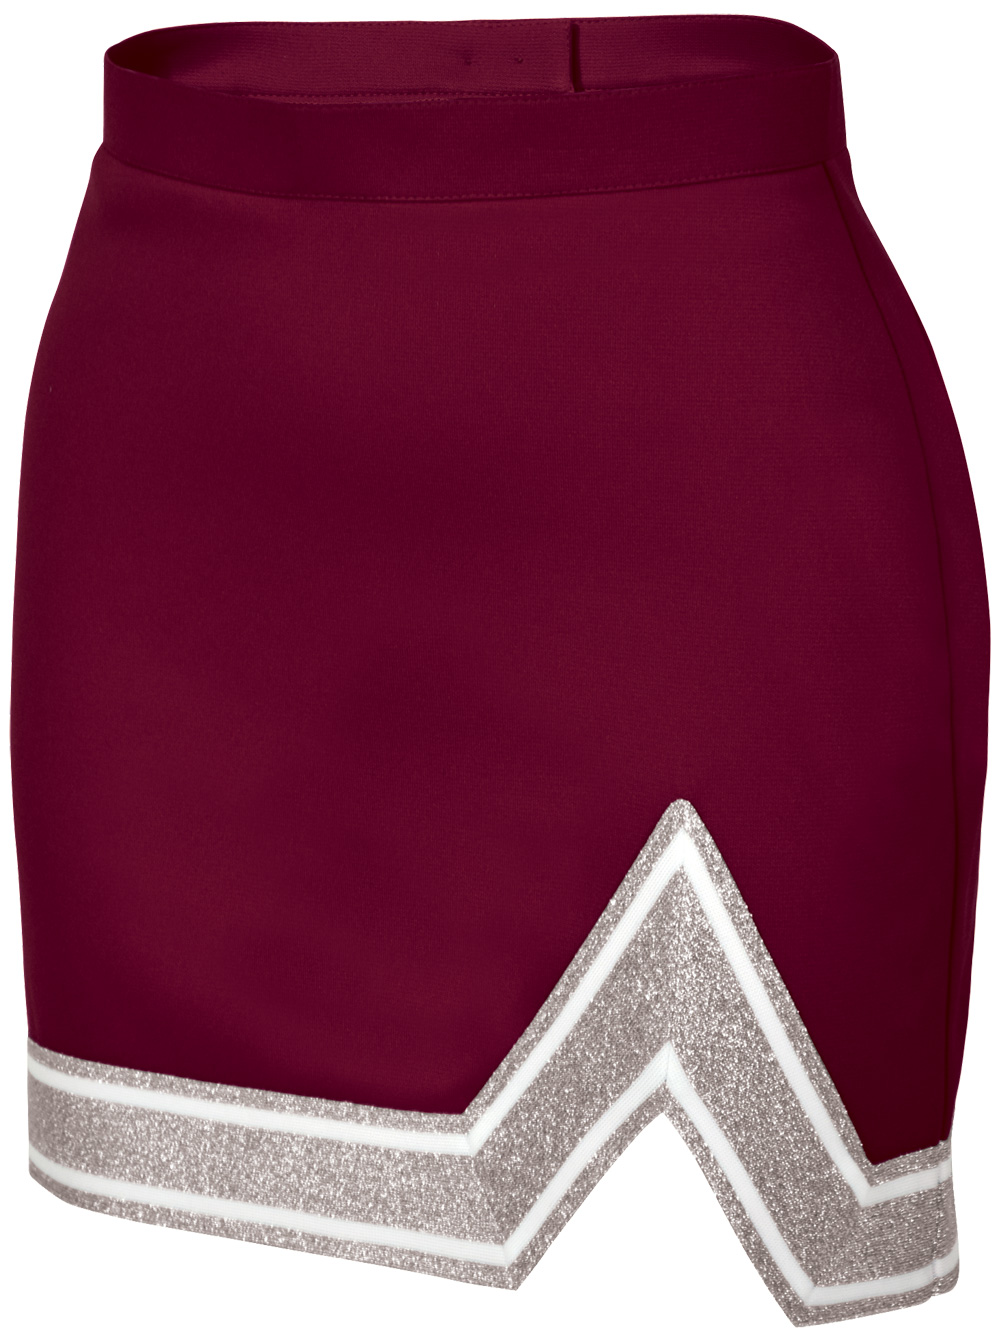 Chasse Girls' Blaze Skirt Maroon/White/Metallic Silver Youth Large Size - Large